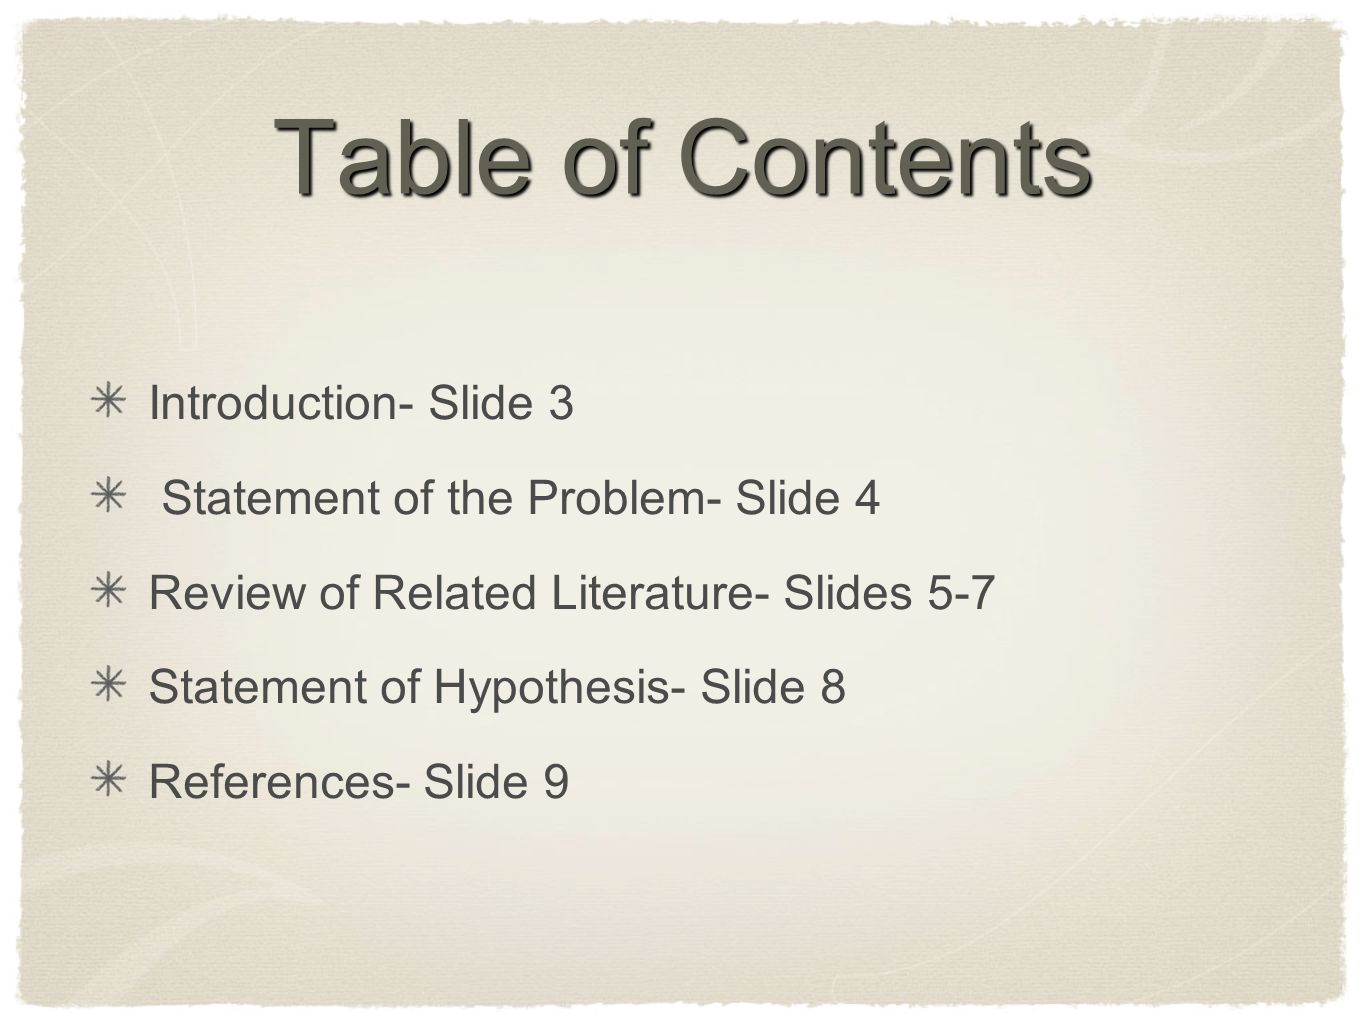 introduction and statement of the problem Problem statements the simplest way to approach problem statements is to start by looking at where they fit into your document your problem statement will make up the core of the introduction to your essay the introduction should set the stage for your readers and give them a clear idea of your argument.